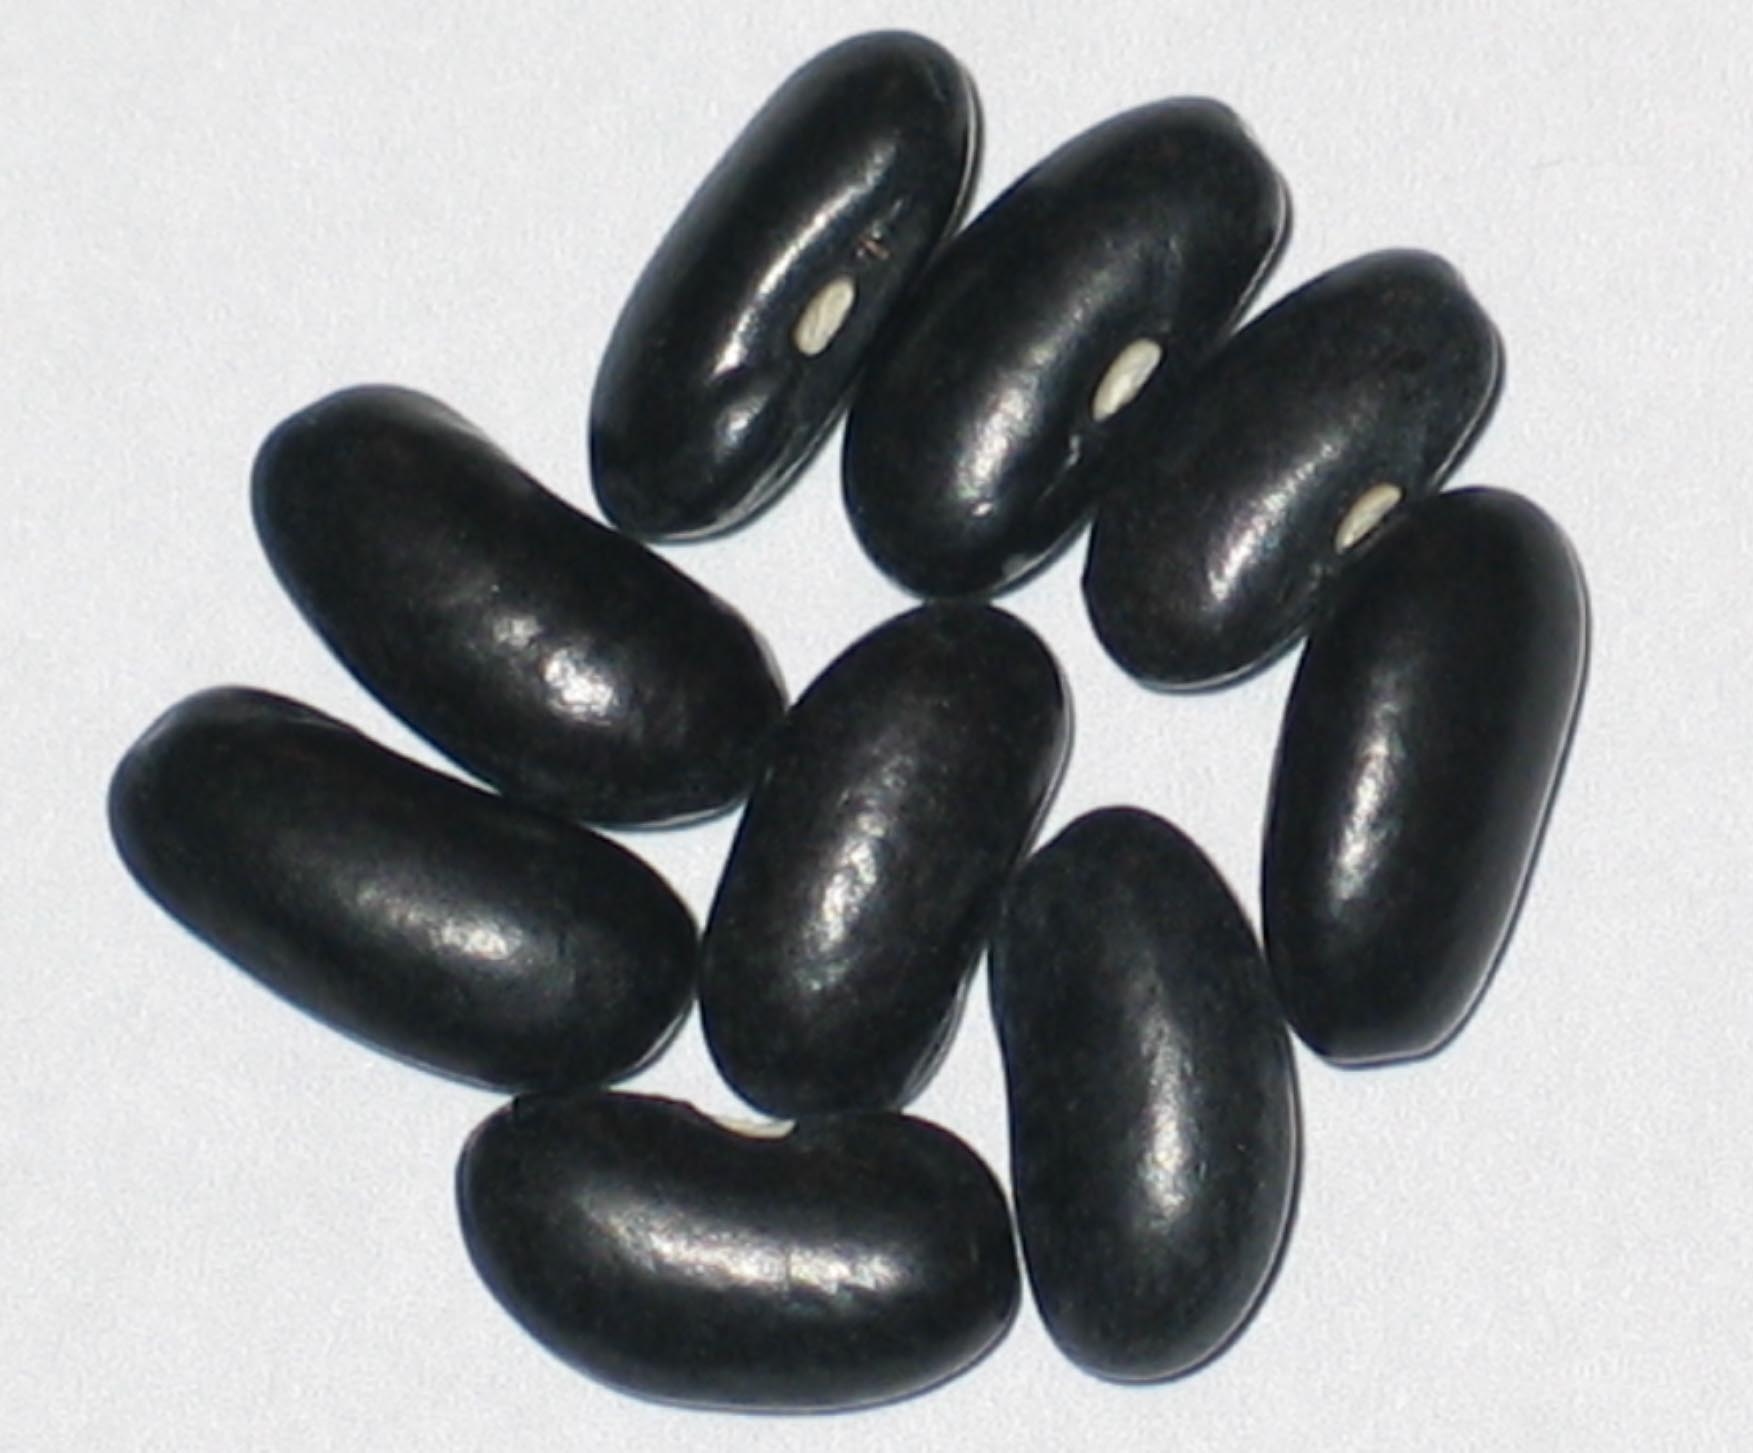 image of Black Valentine beans